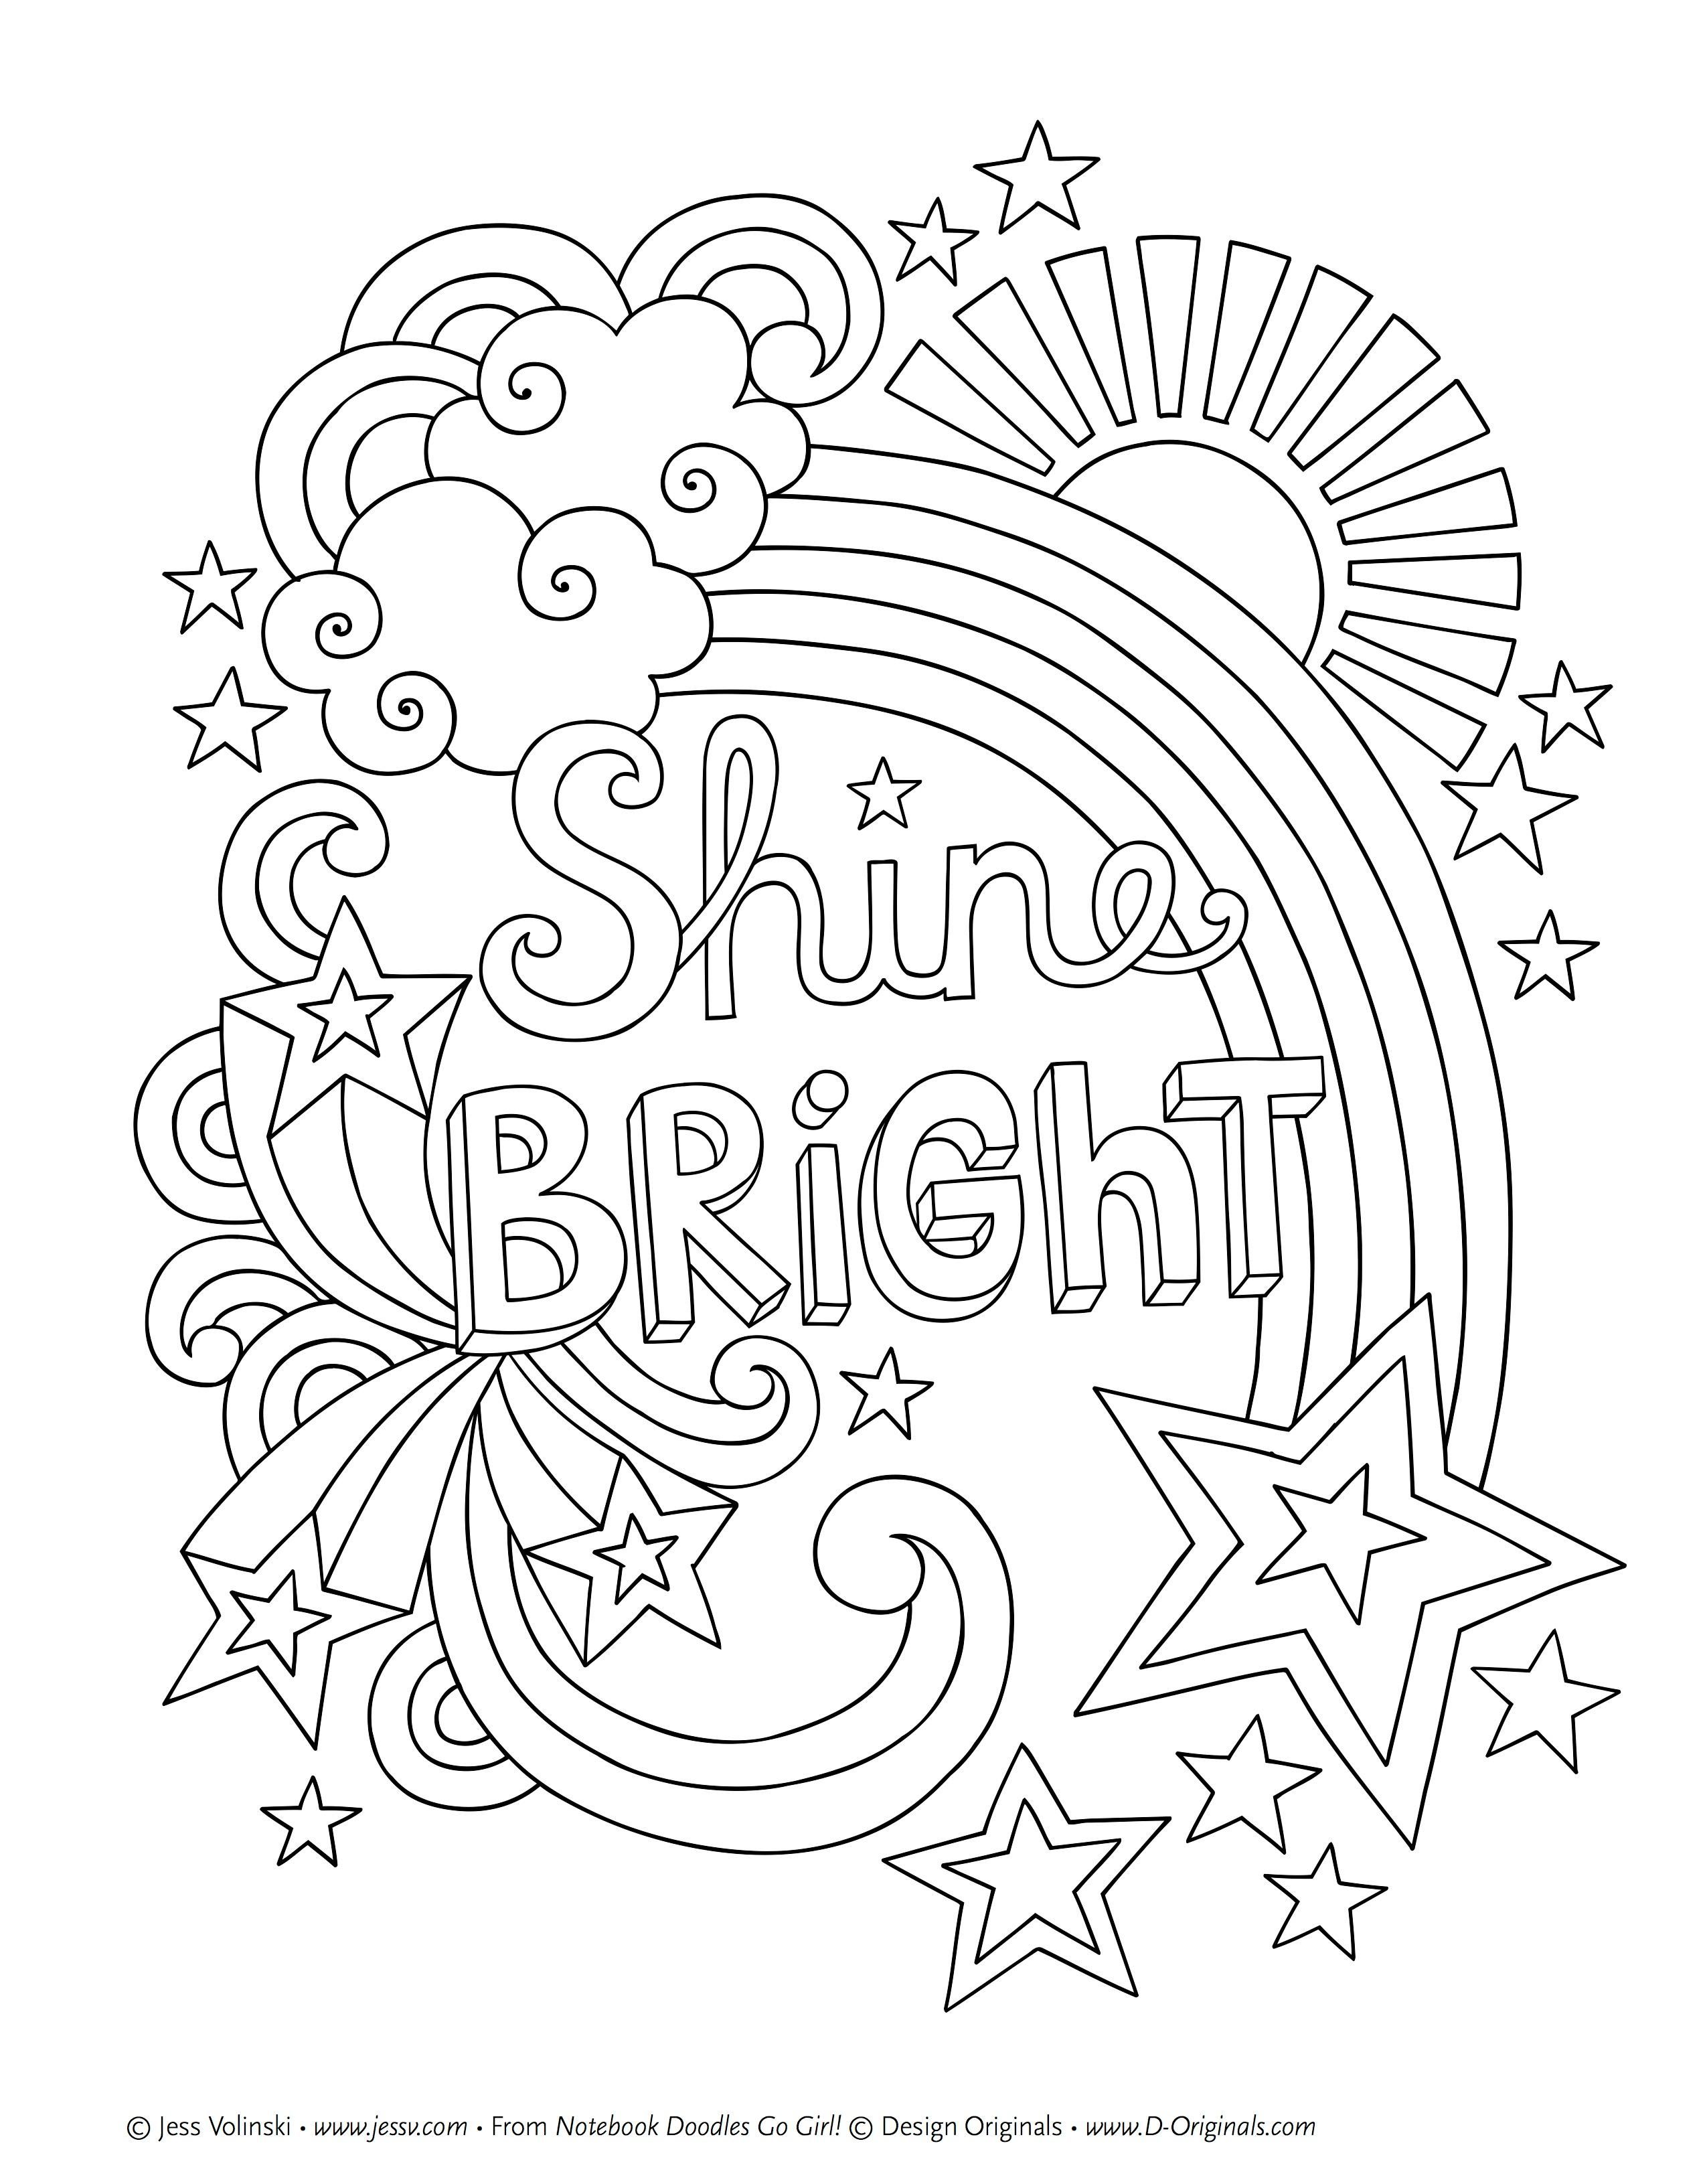 Printed   Color   Quote Coloring Pages, Cute Coloring Pages